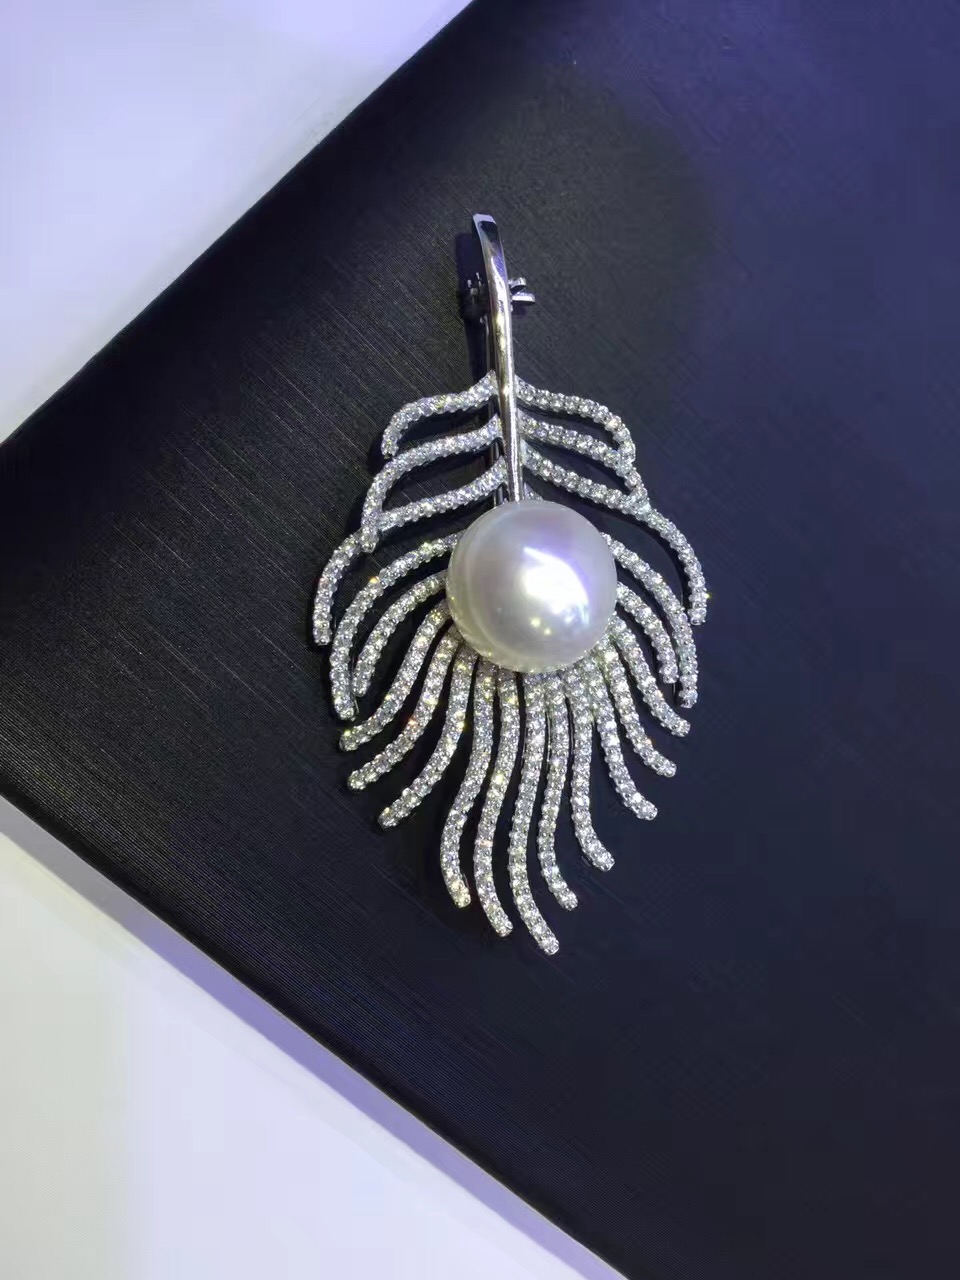 nature fresh water pearl brooch pins cultured pearl feather of peacock 925 sterling silver with cubic zircon fashion jewelry tanqu diamond shaped variable handle for obag long adjustable handles with drop buckle for o bag for eva bag body